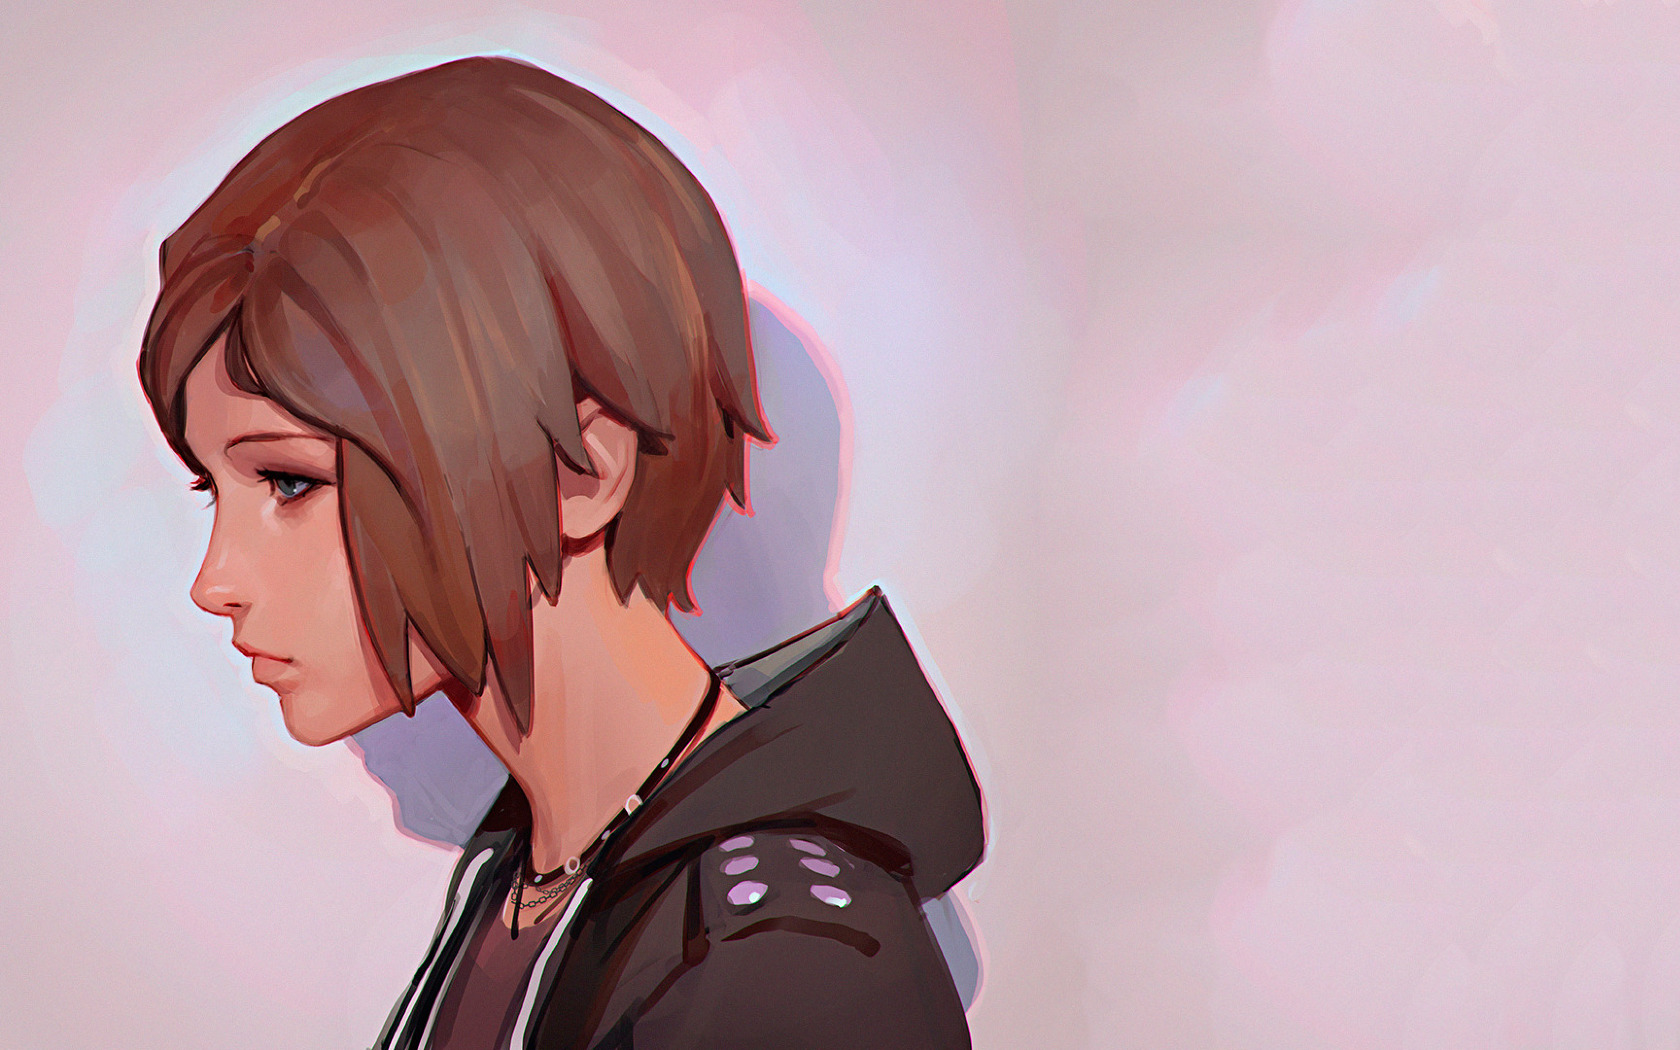 1680x1050 Chloe Price Life Is Strange Art 1680x1050 Resolution